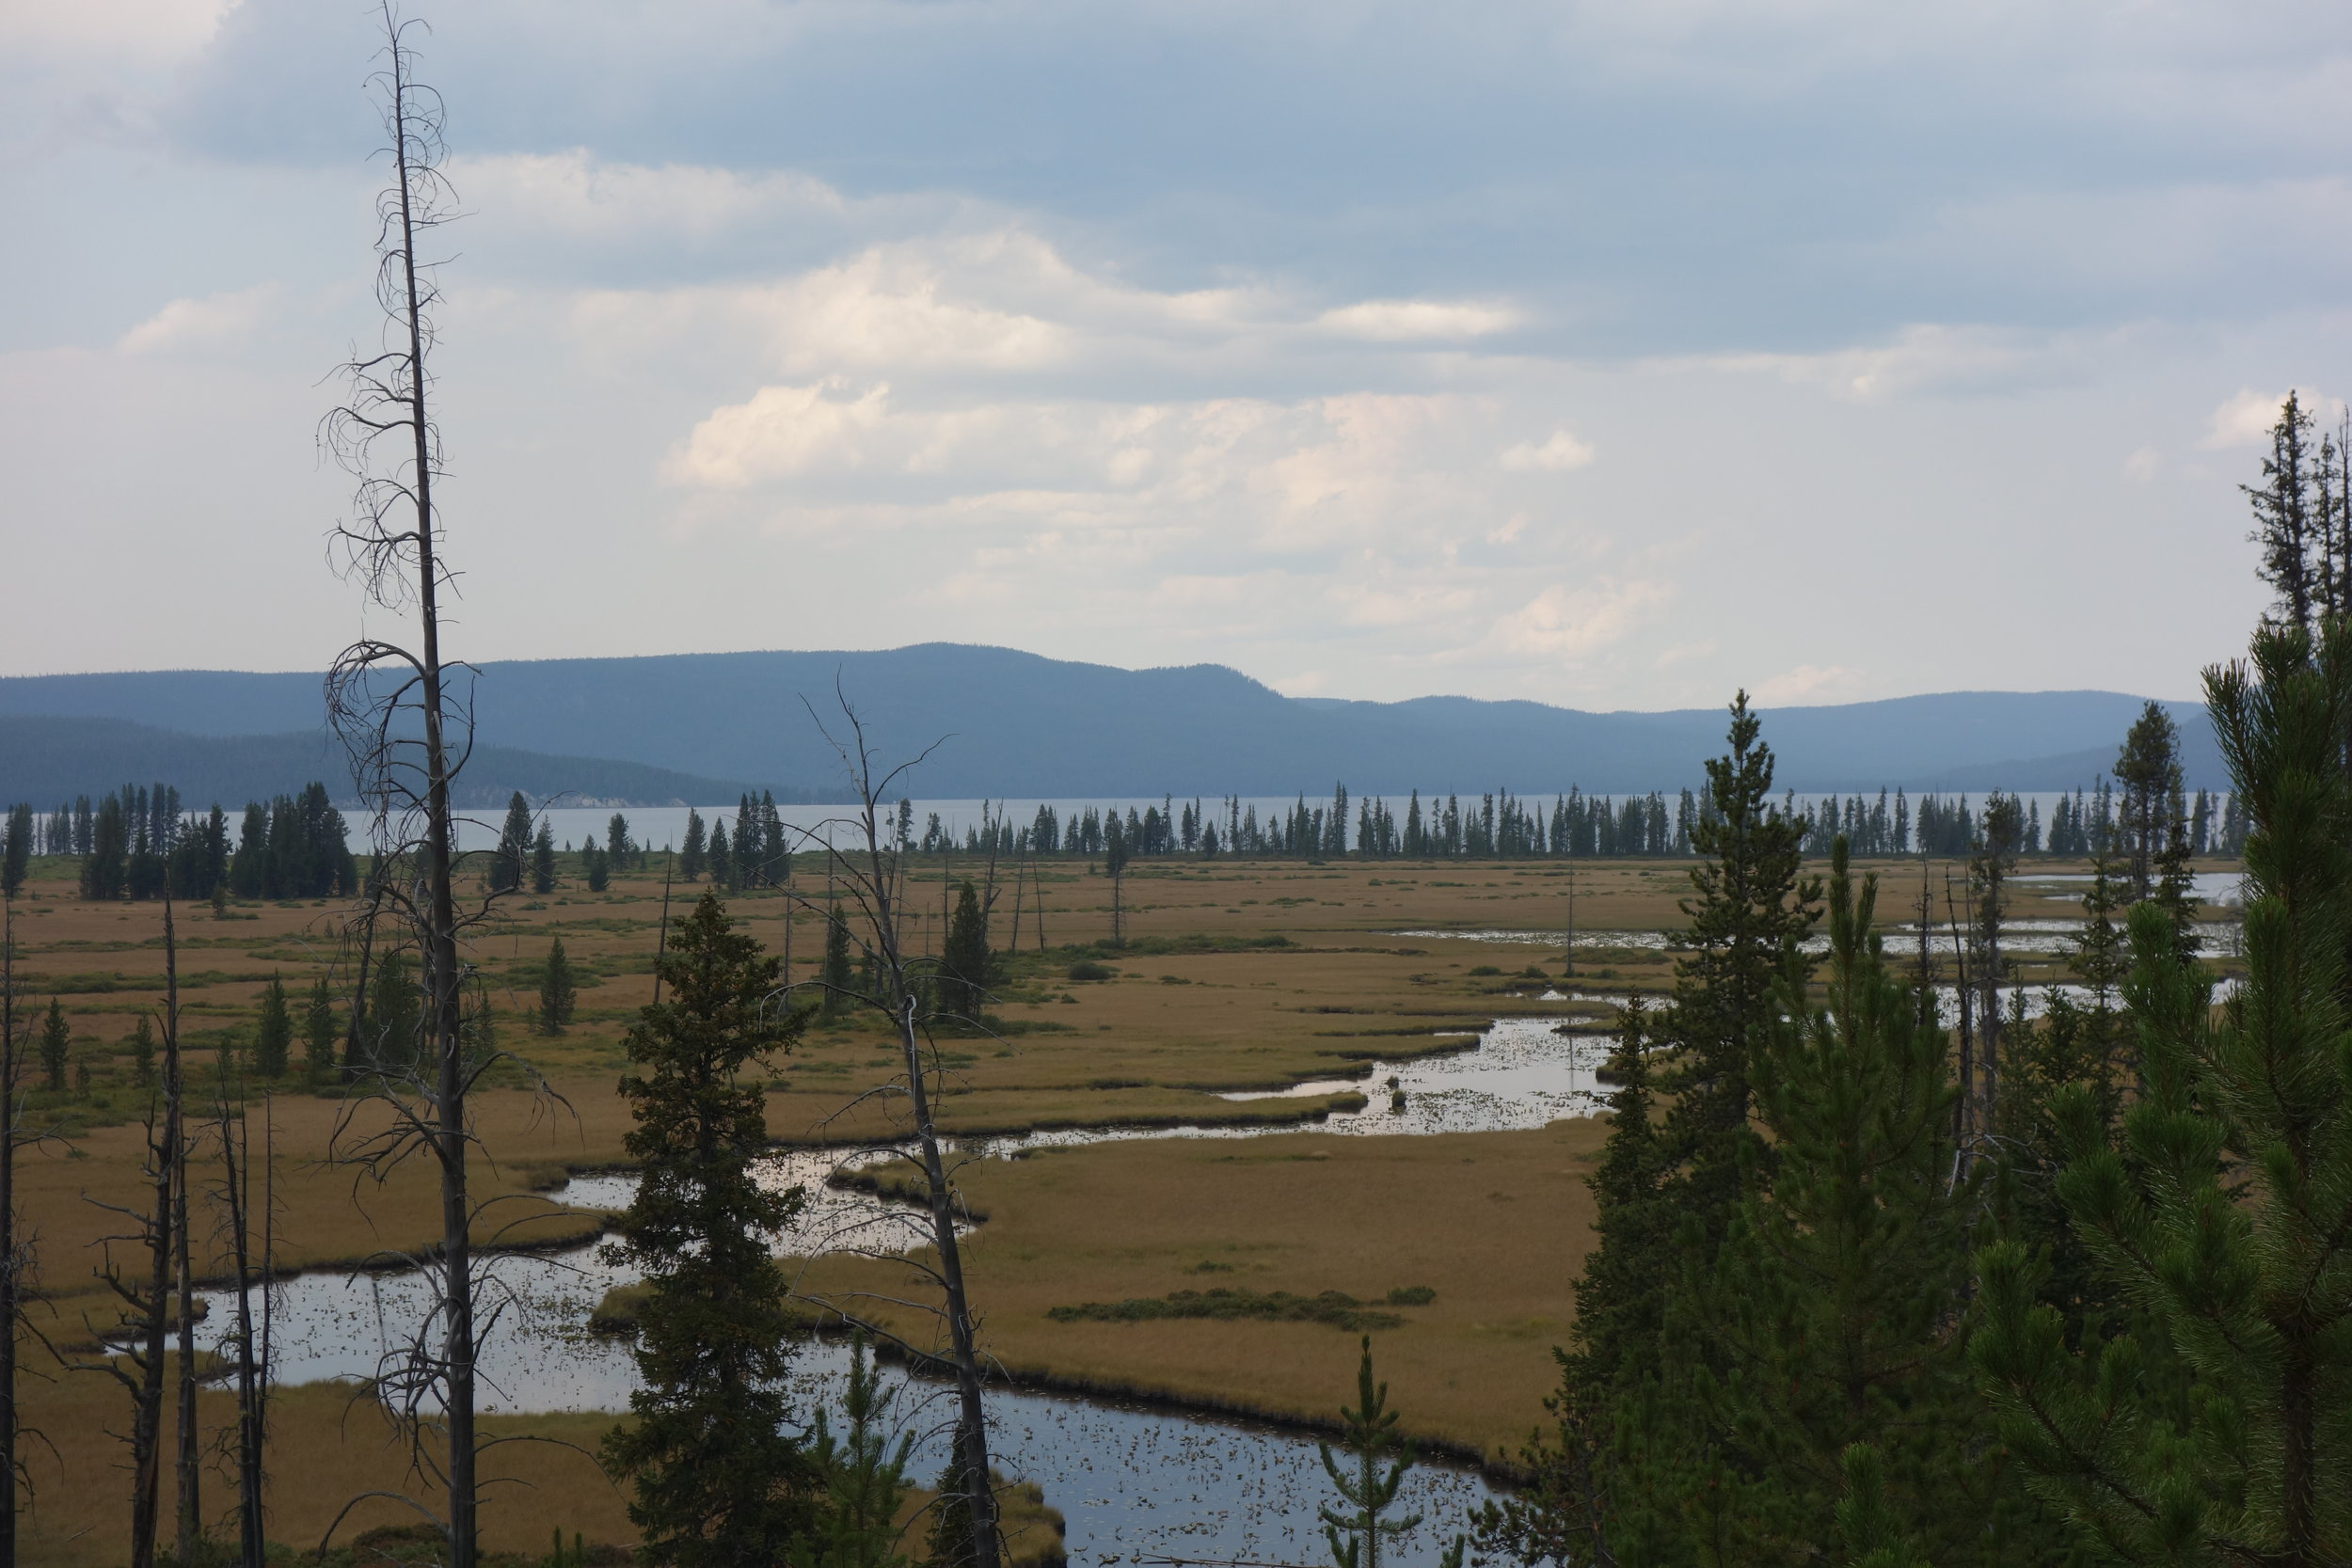 Shoshone Creek and Lake - the second largest lake in Yellowstone. Check out facebook.com/hikethedivide for video footage of the marshy section